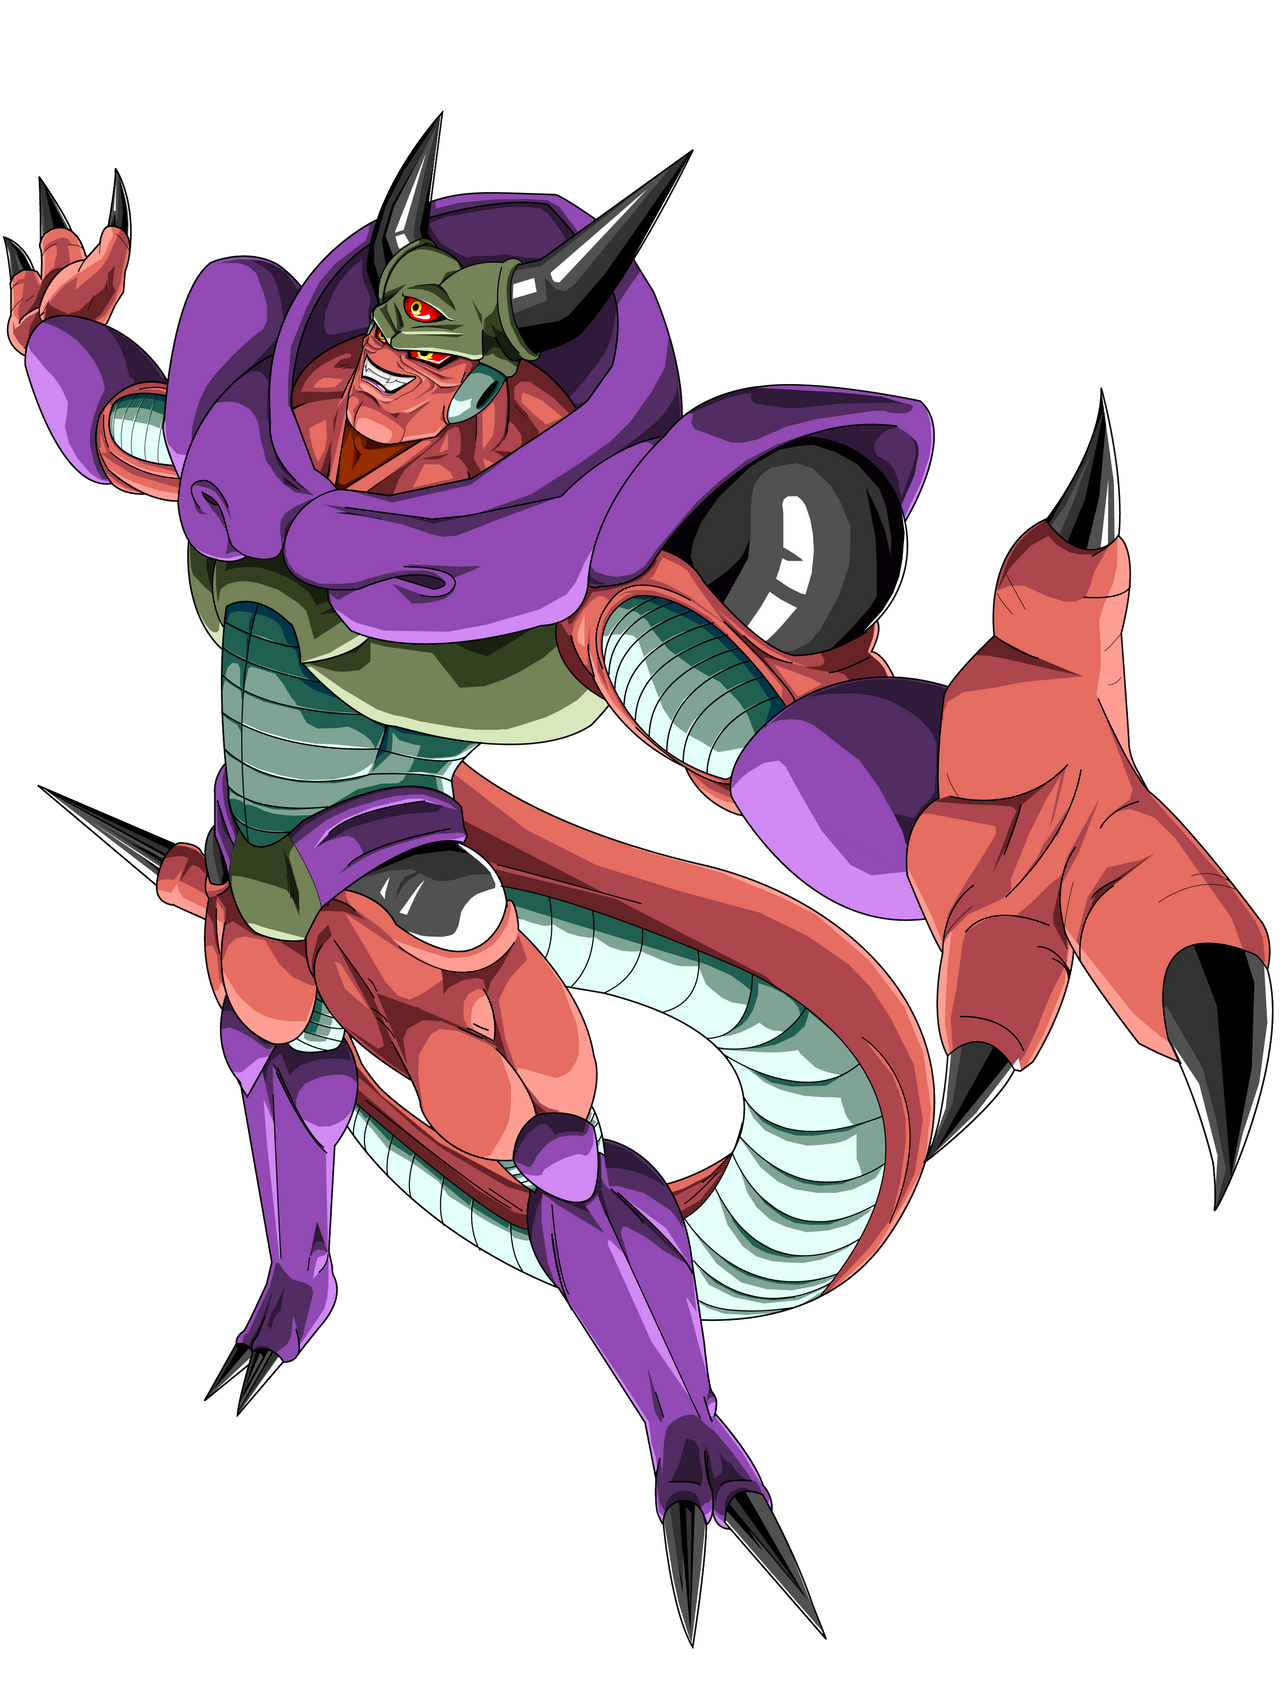 OZOTTO The Super Monster by ruga-rell on DeviantArt